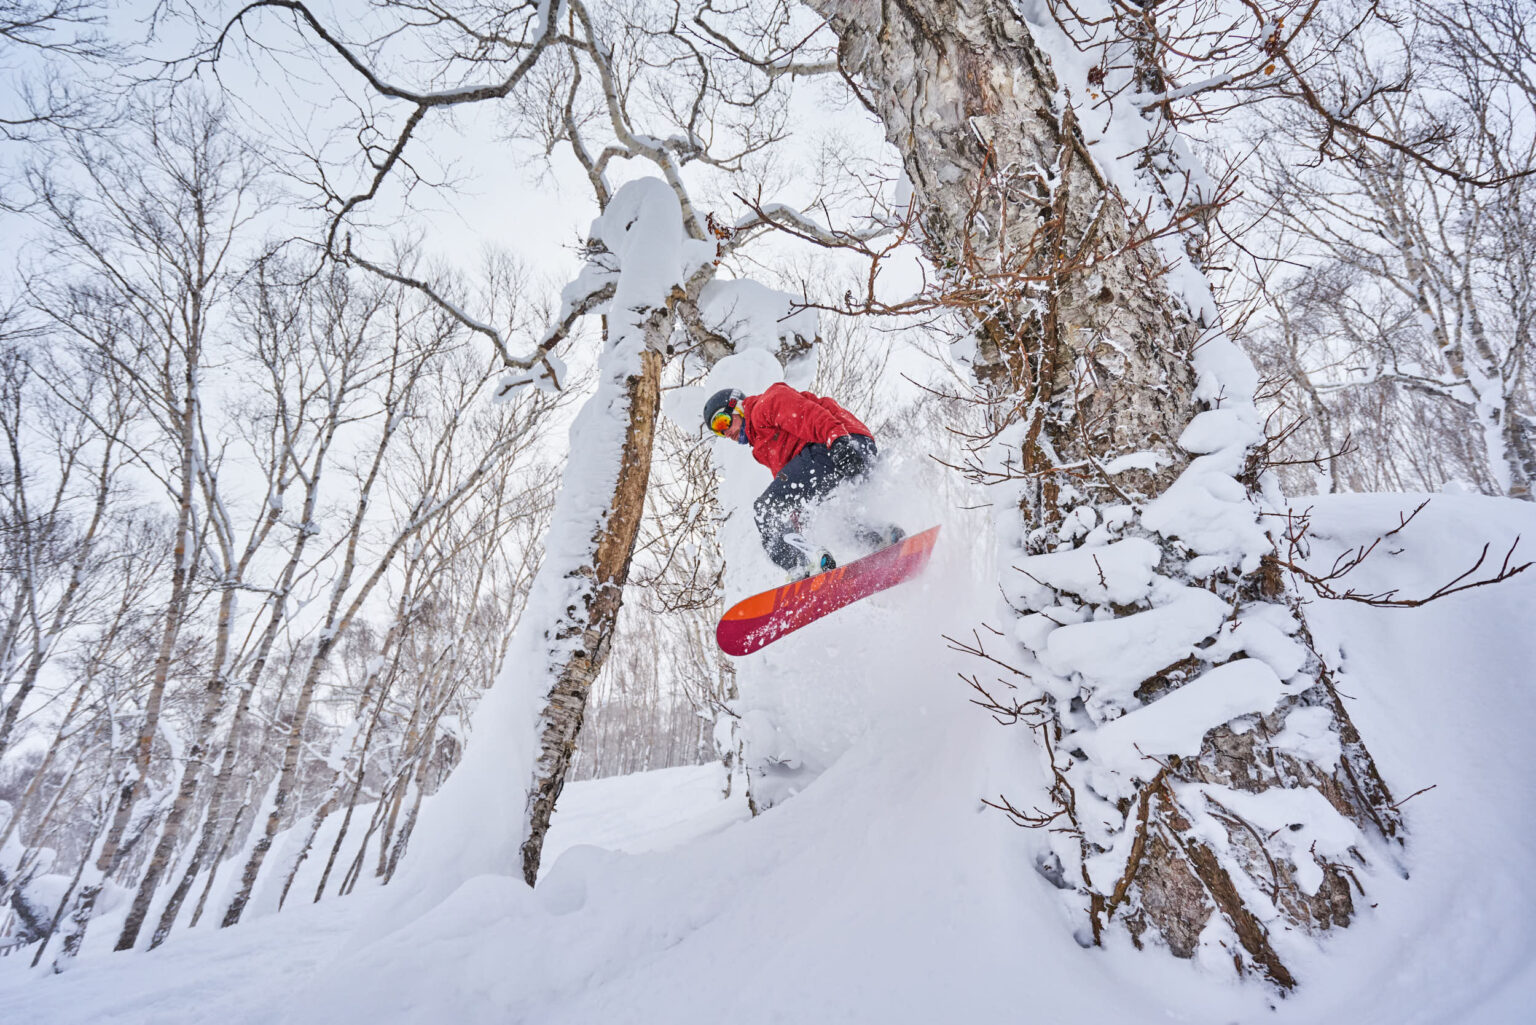 Ben catching some air through the trees covered in Japan's powder snow at Rotsuko, Japan